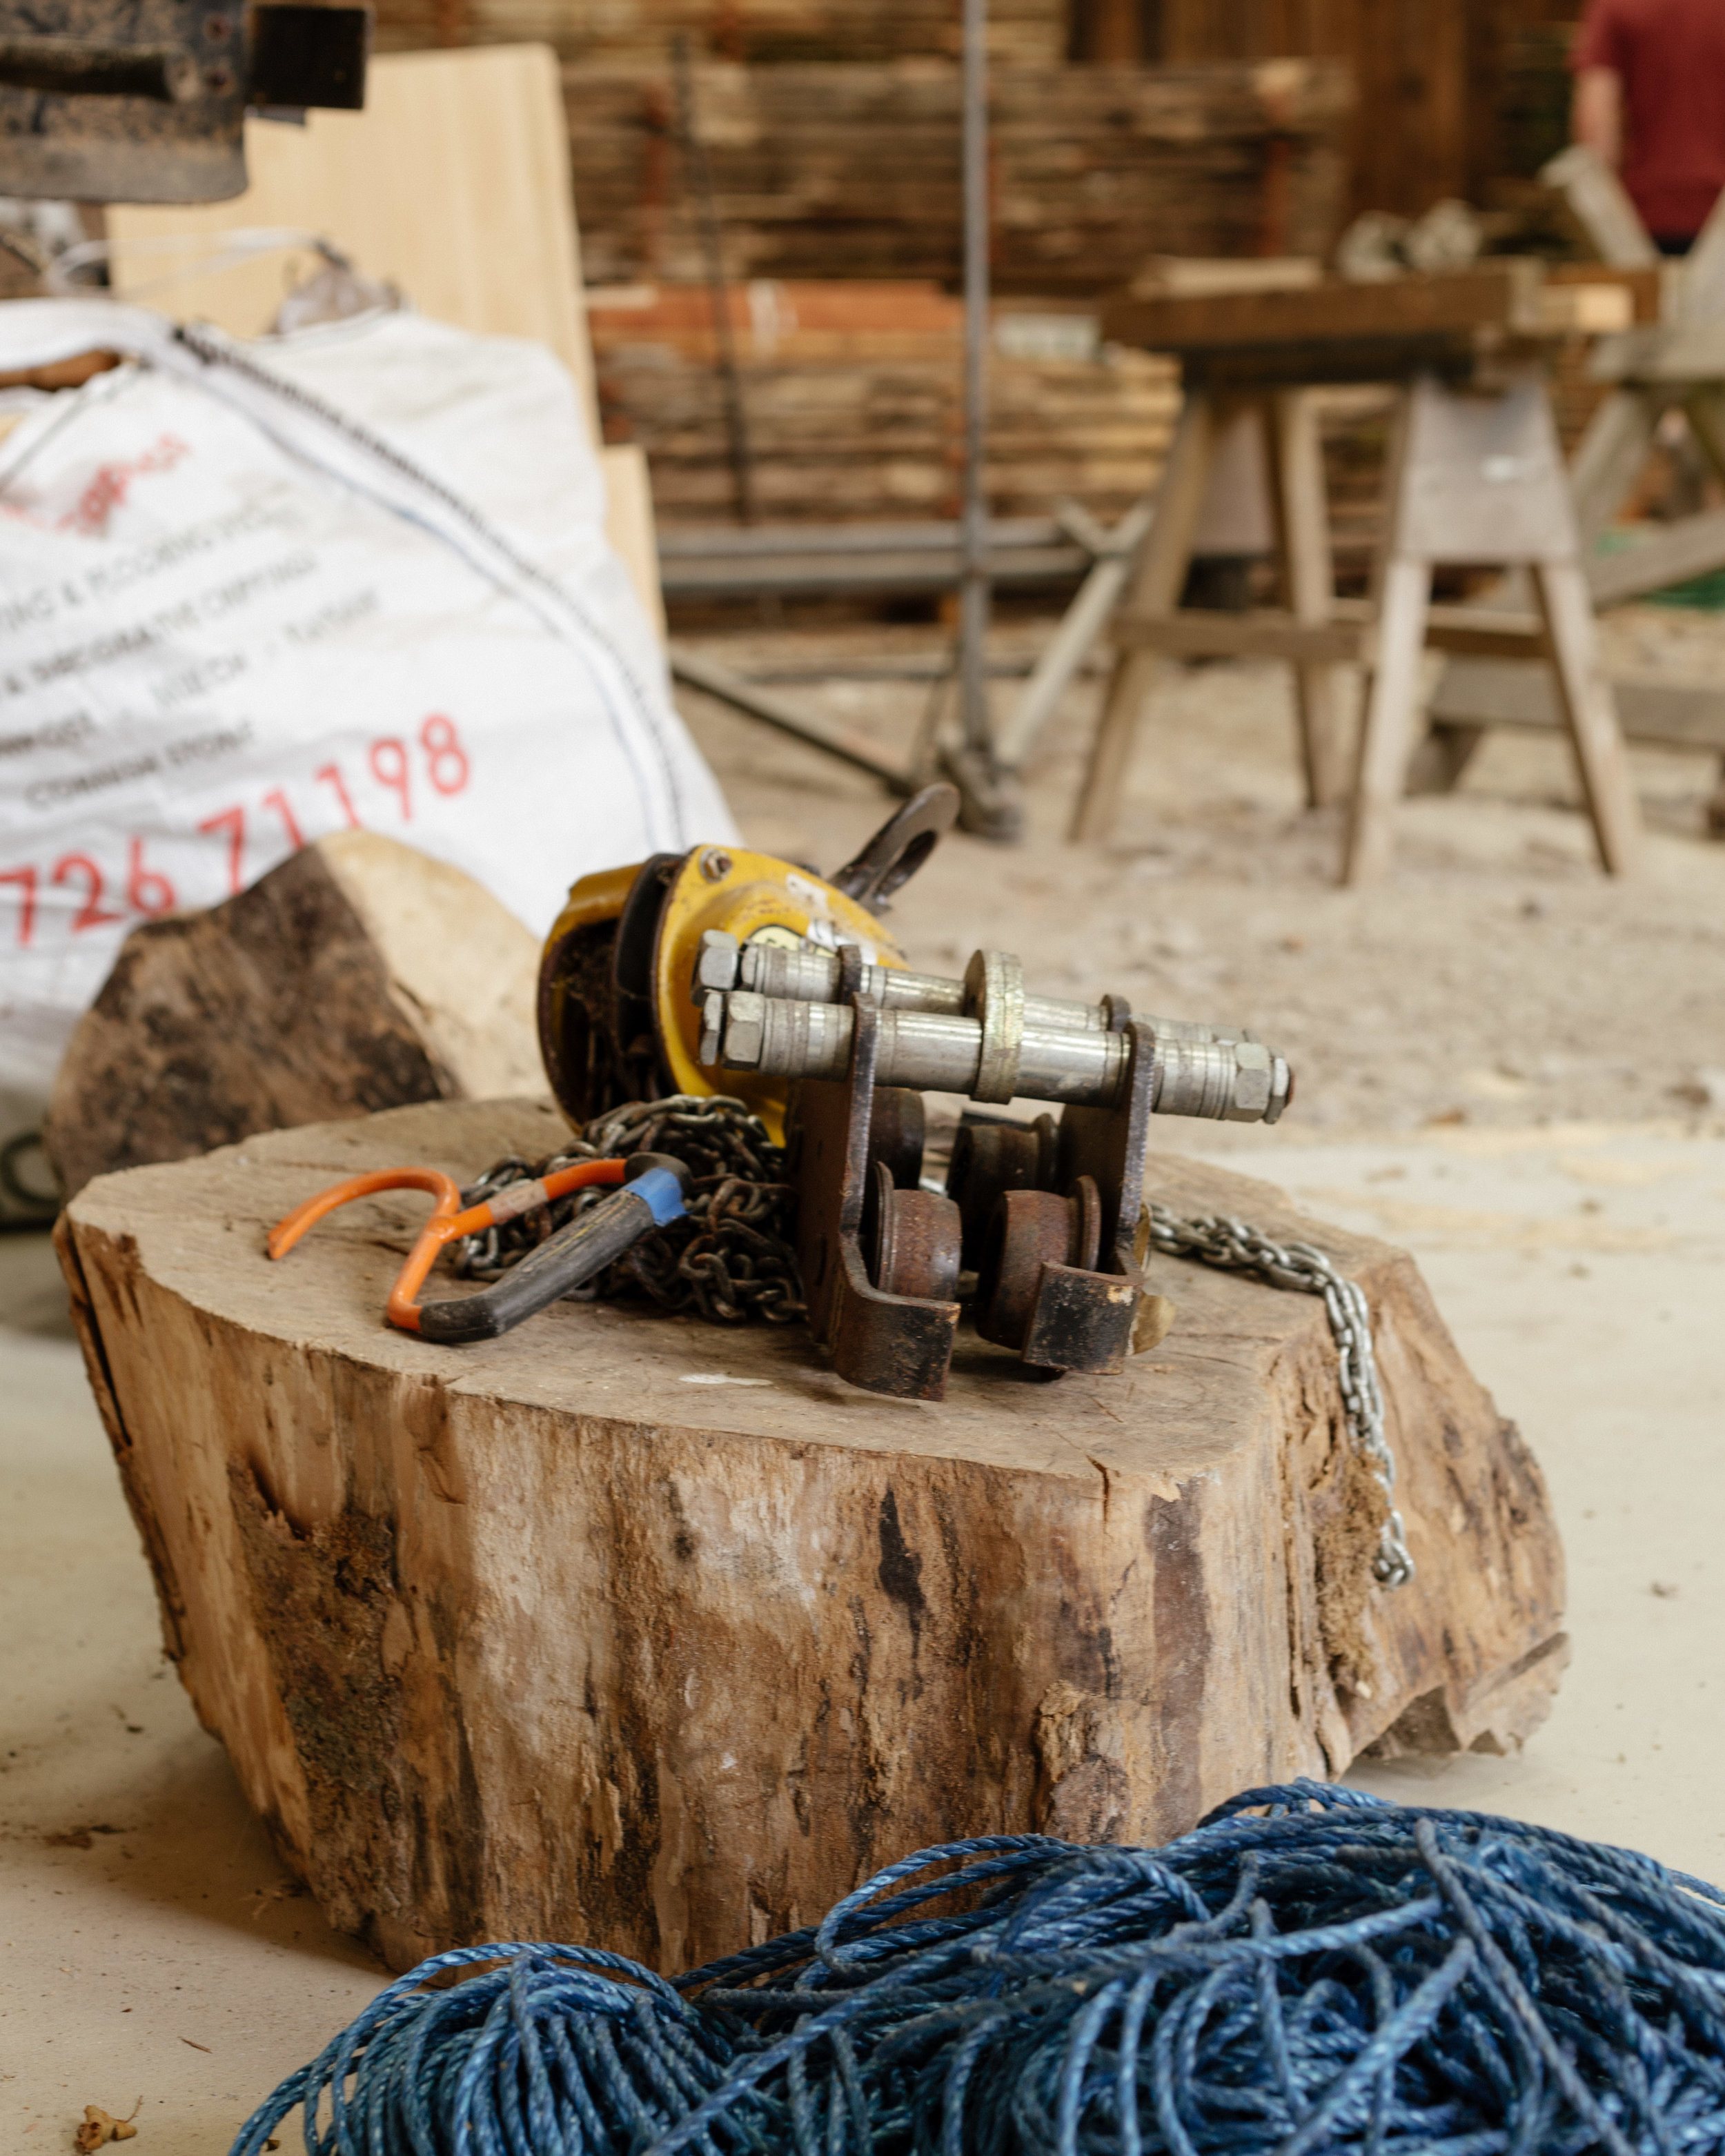 Power tools and milled timber in the barn at Argal Home Farm.